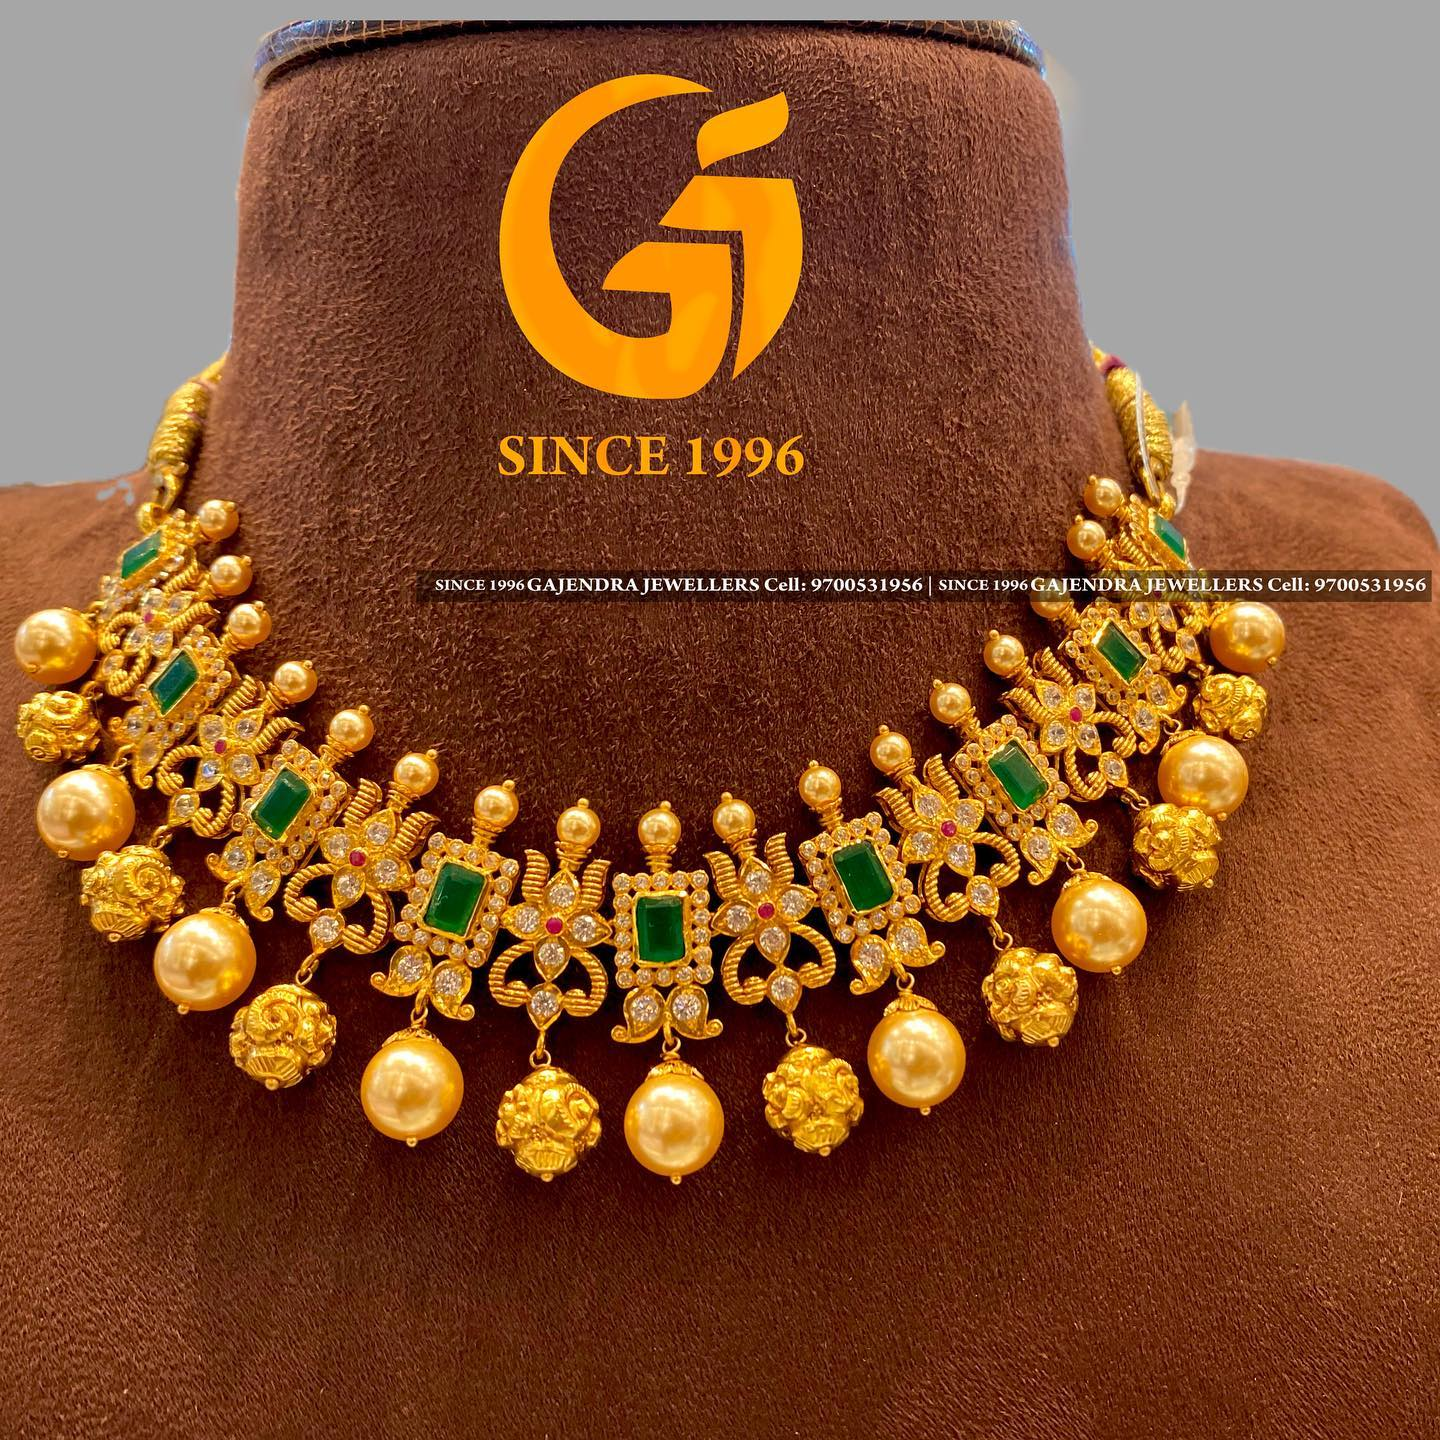 Stunning 22k gold necklace with south sea pearl and gold ball hangings.  2021-05-24